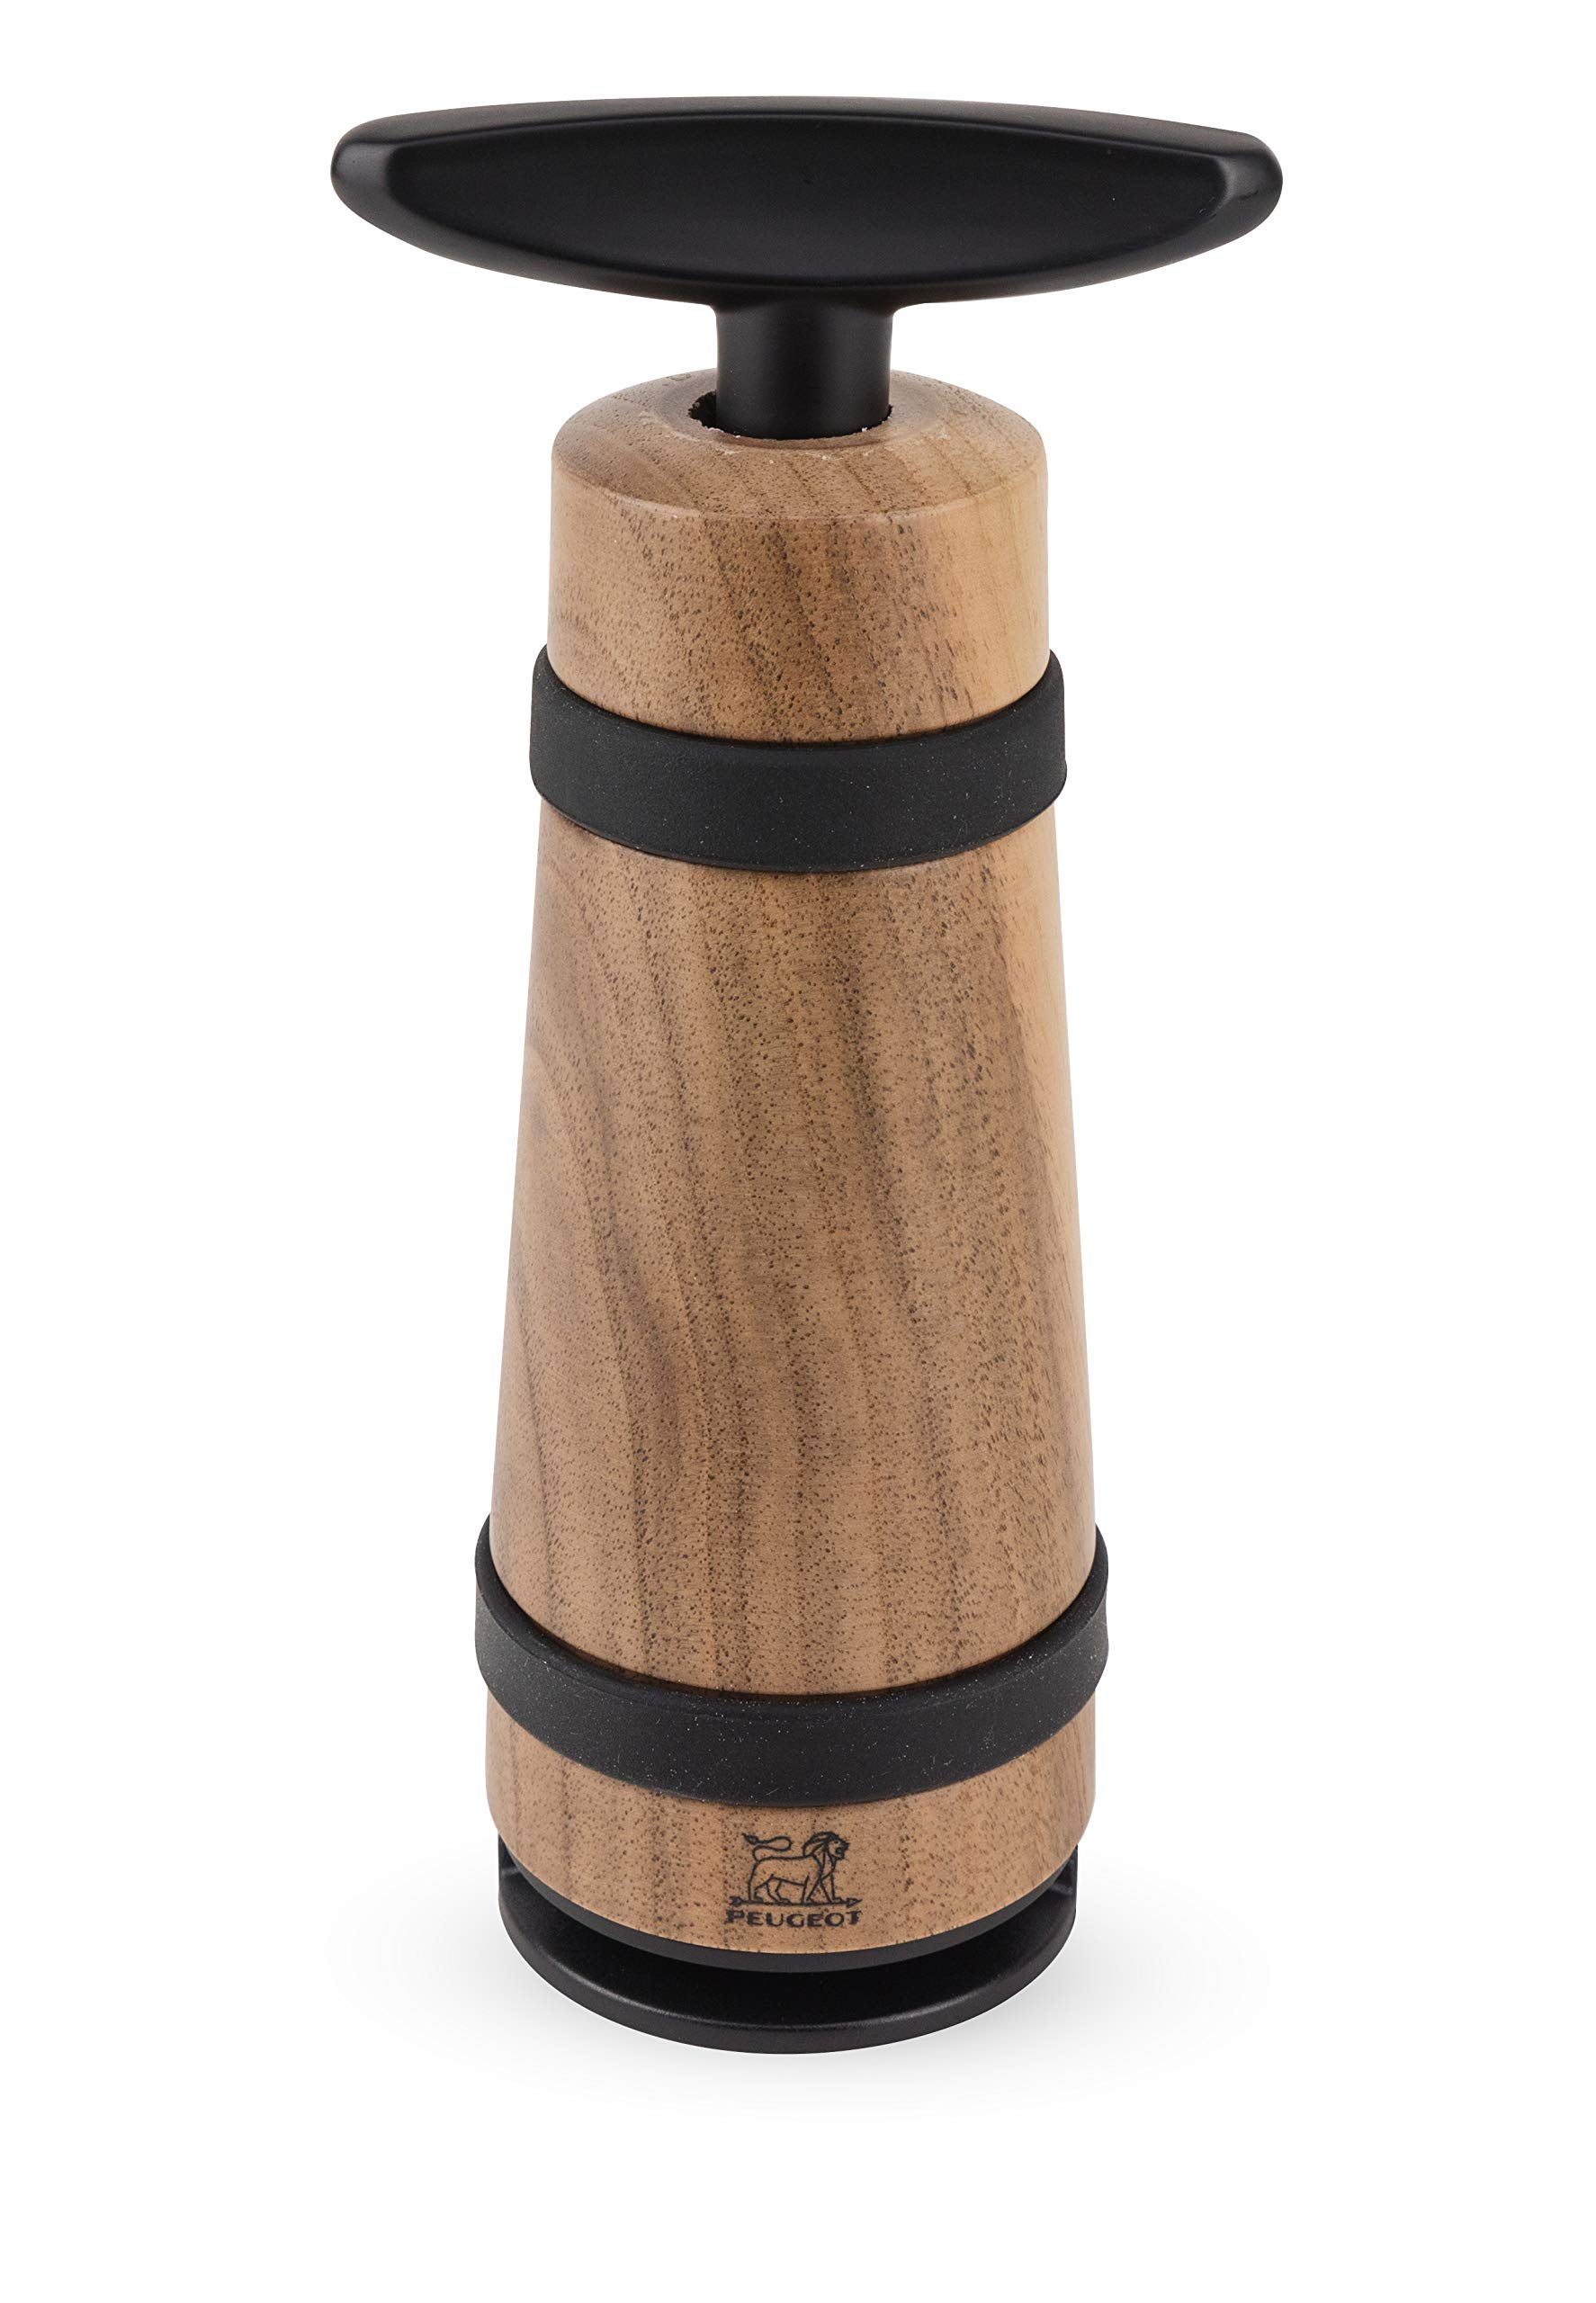 Peugeot 200565 Barrel Infinity, Walnut Wood Corkscrew Wine Opener